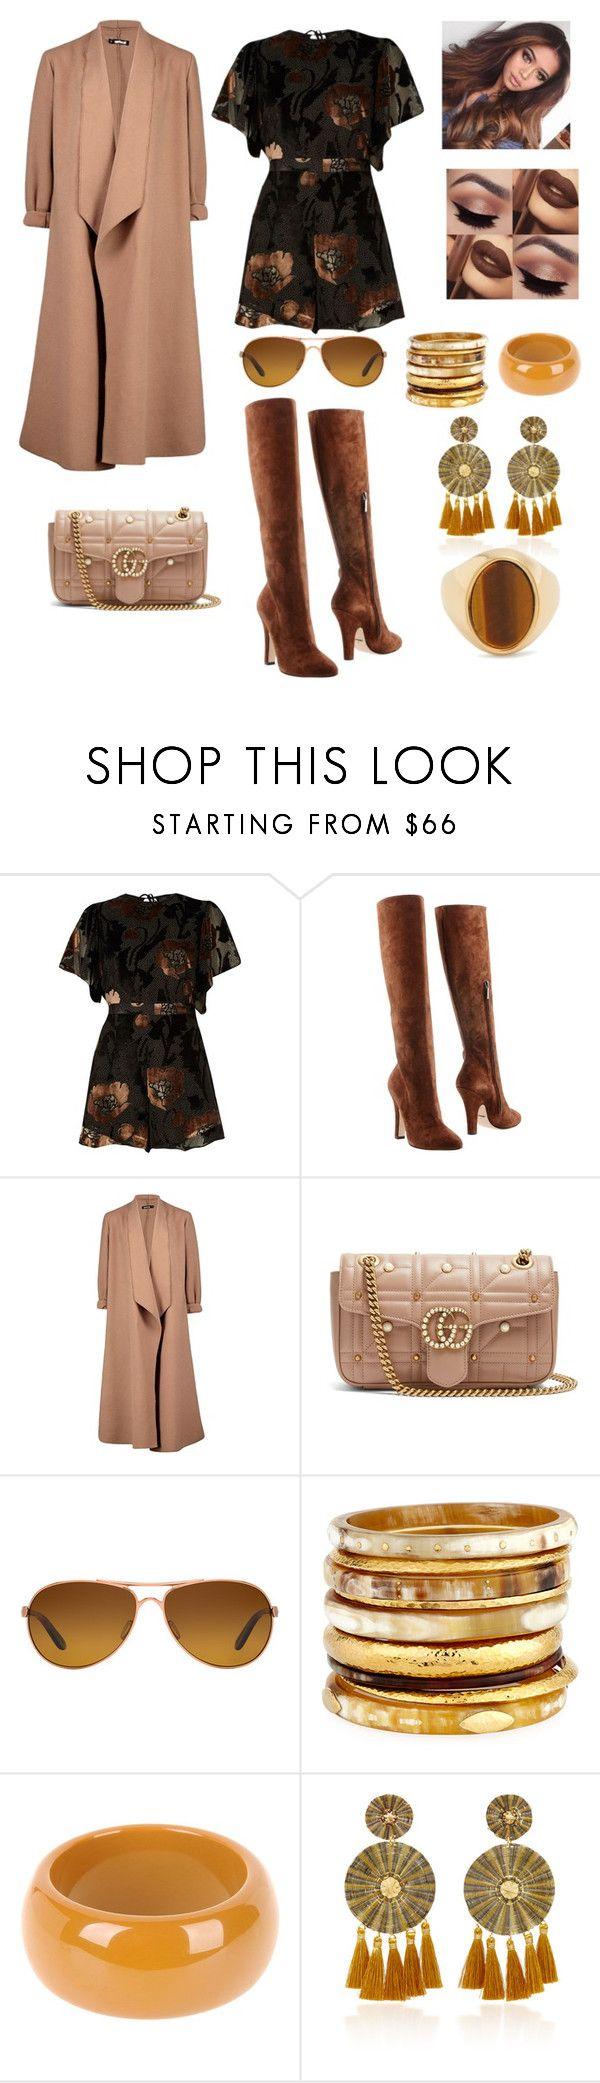 """Untitled #651"" by ericap61720 ❤ liked on Polyvore featuring River Island, Dolce&Gabbana, Boohoo, Gucci, Oakley, Ashley Pittman, Dsquared2, Mercedes Salazar and Chloé"